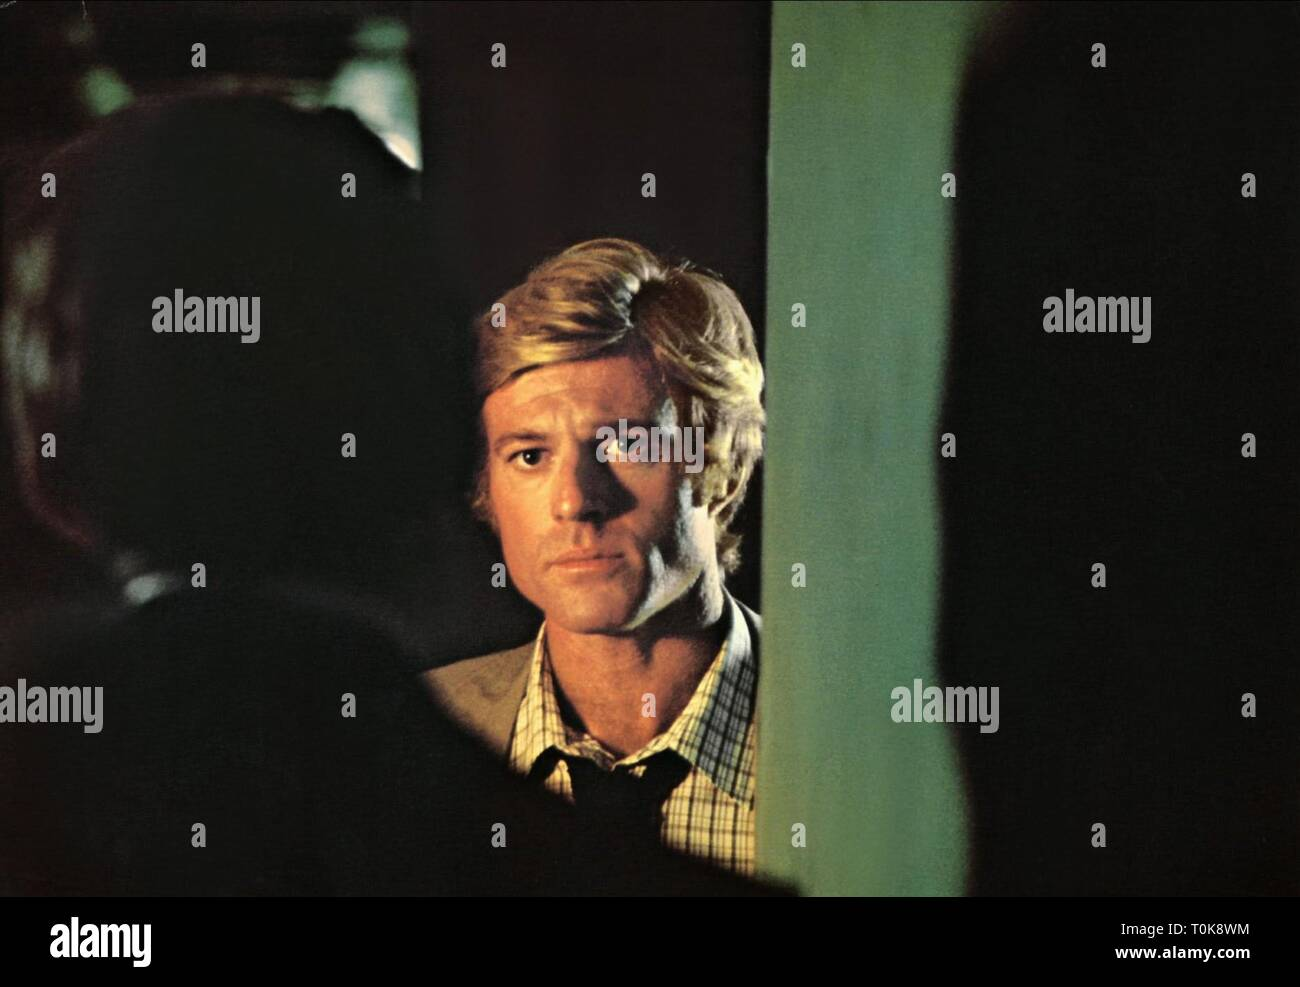 HAL HALBROOK, ROBERT REDFORD, ALL THE PRESIDENT'S MEN, 1976 - Stock Image